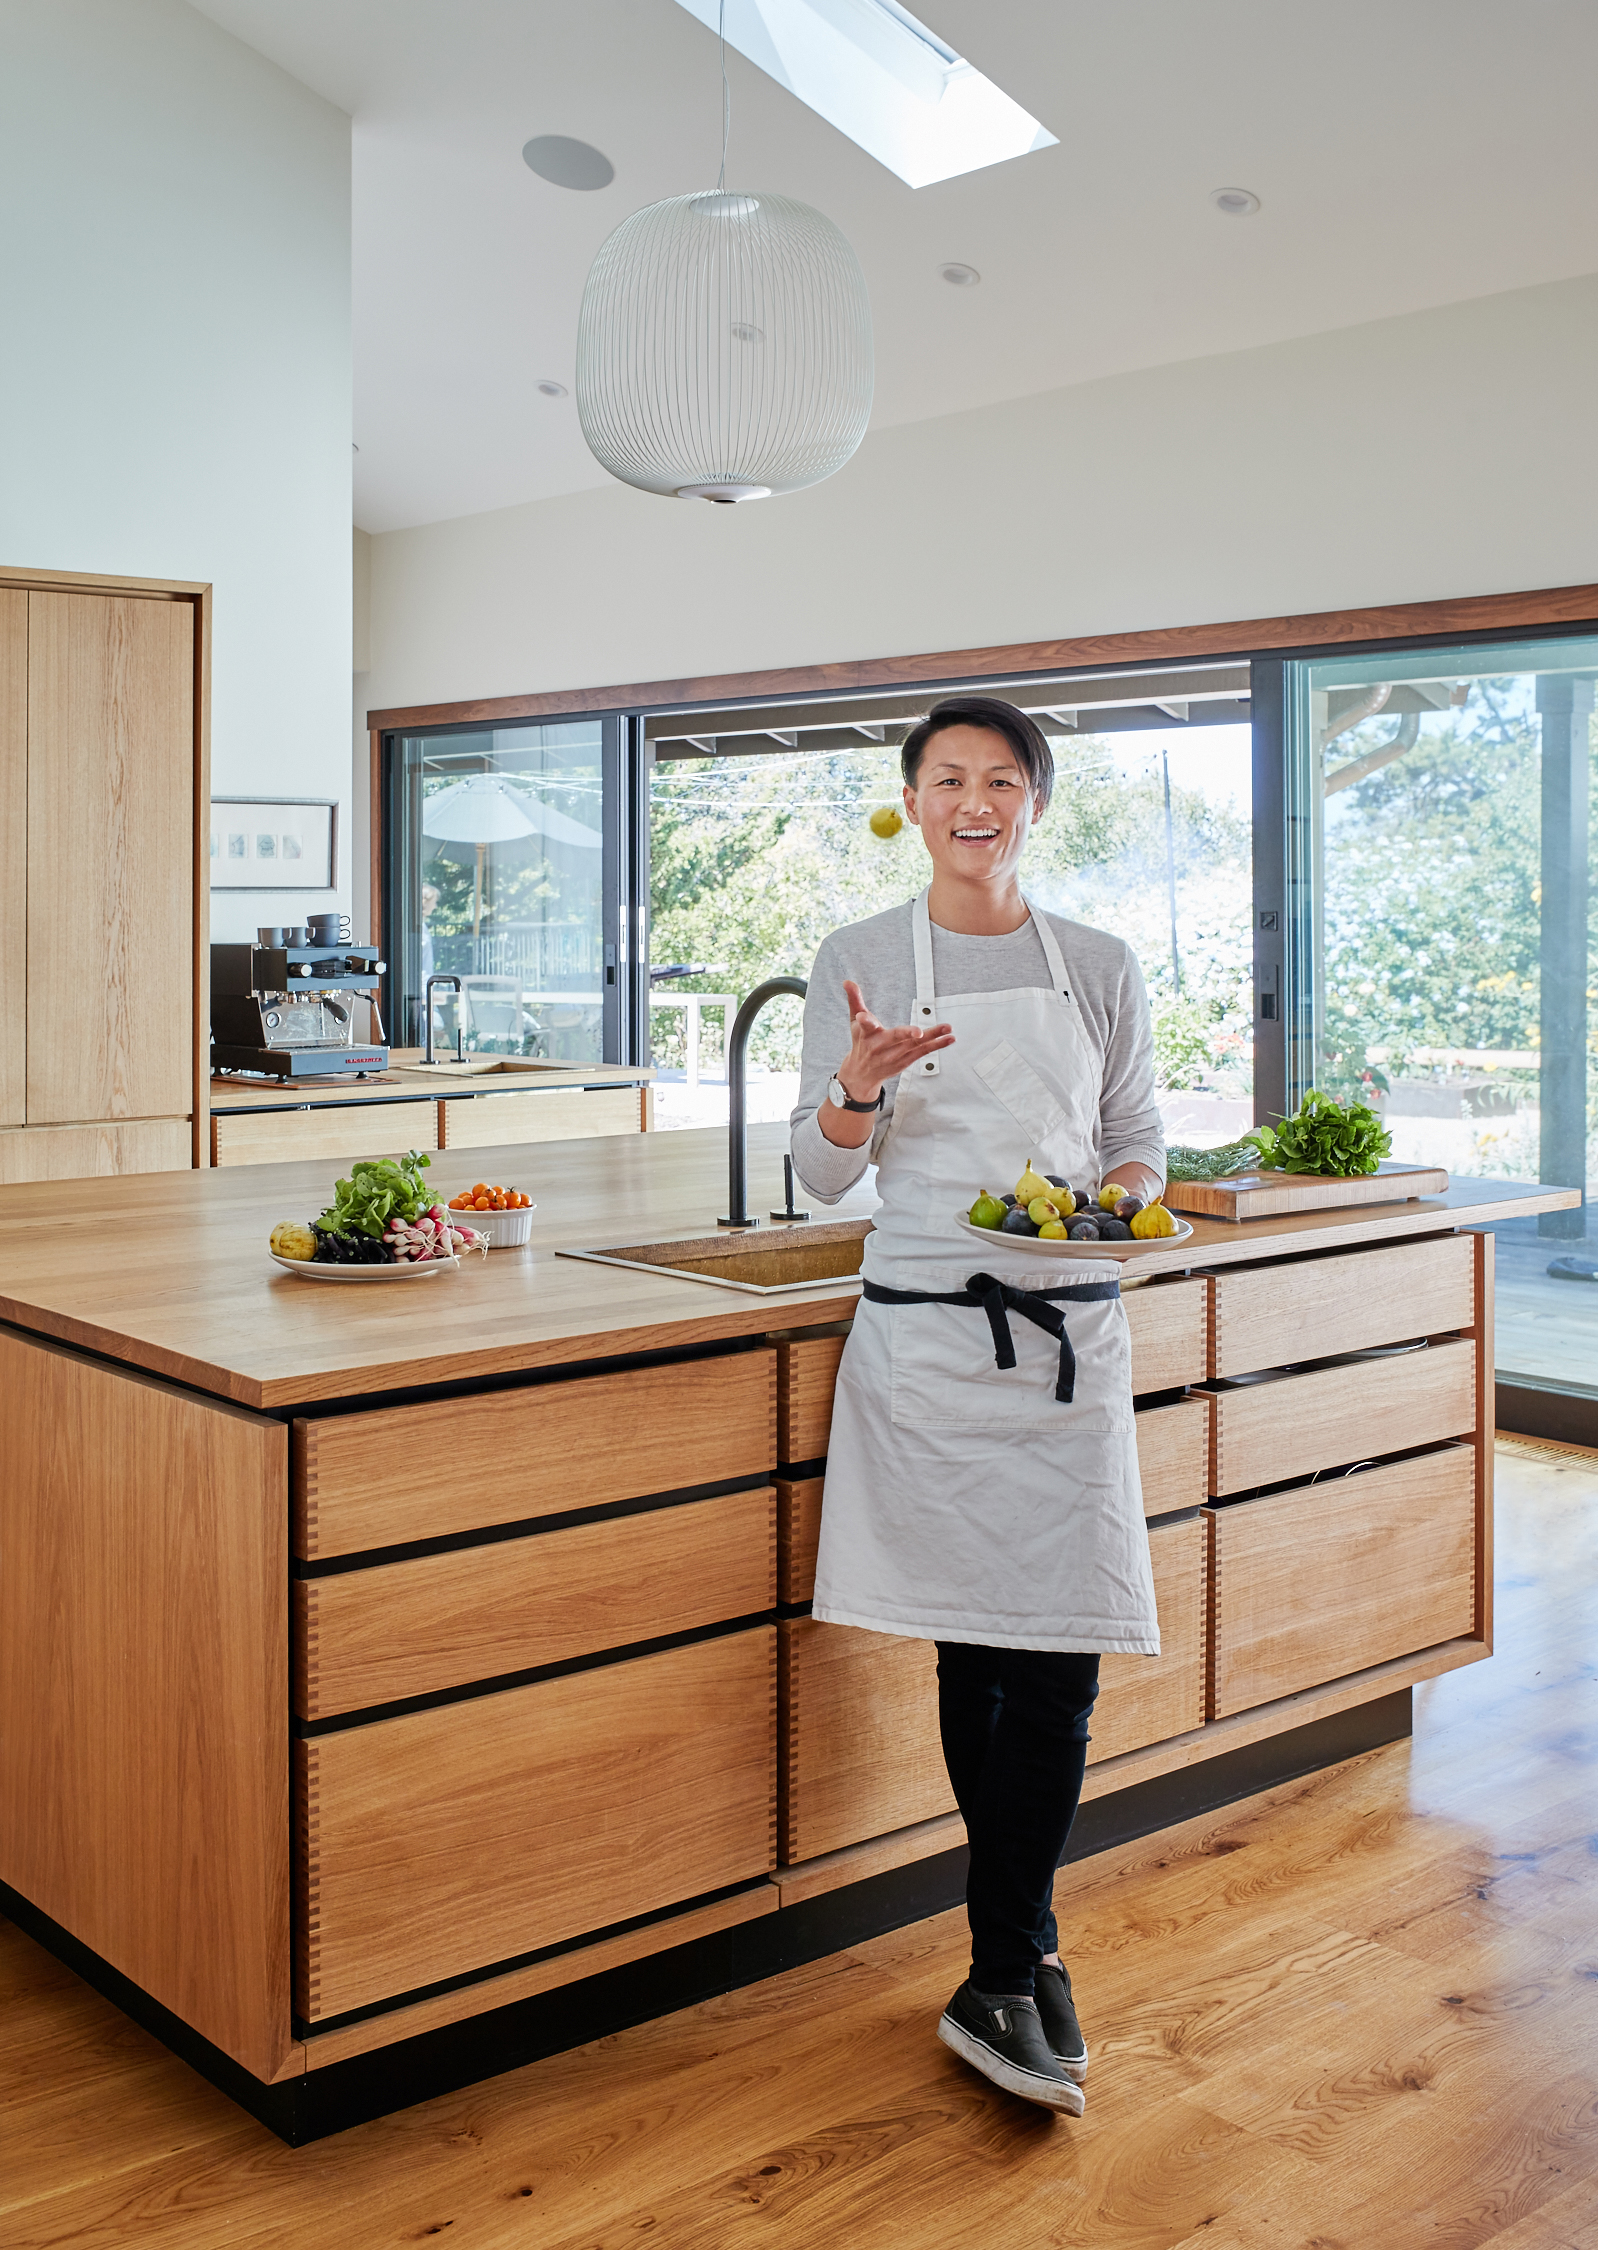 Chef Melissa King test-drives the new kitchen ( cabinets, Garde Hvalsoe; photo credit: James Carriere, courtesy of Staprans Design ).